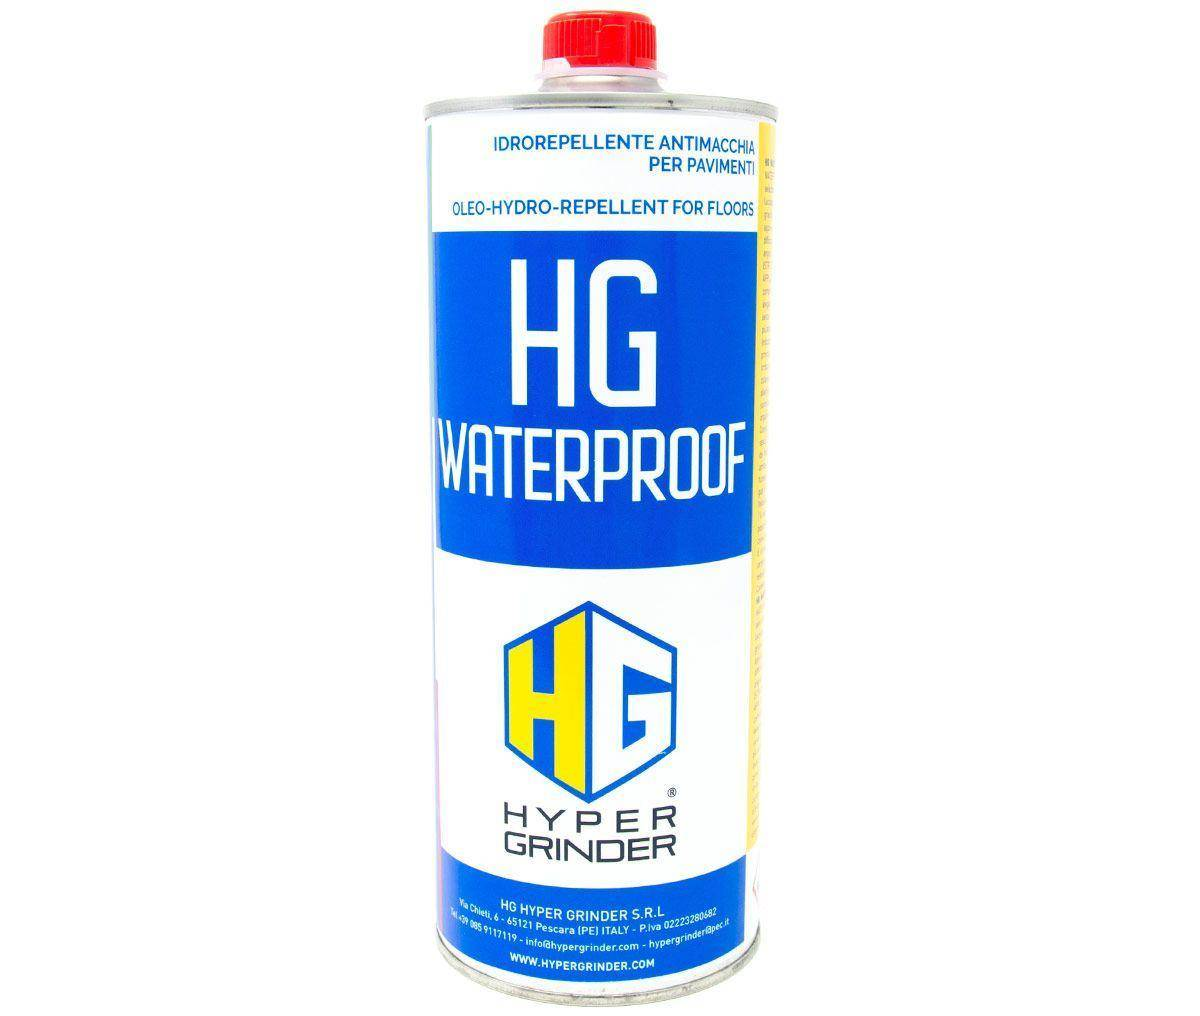 HG waterproof 1443